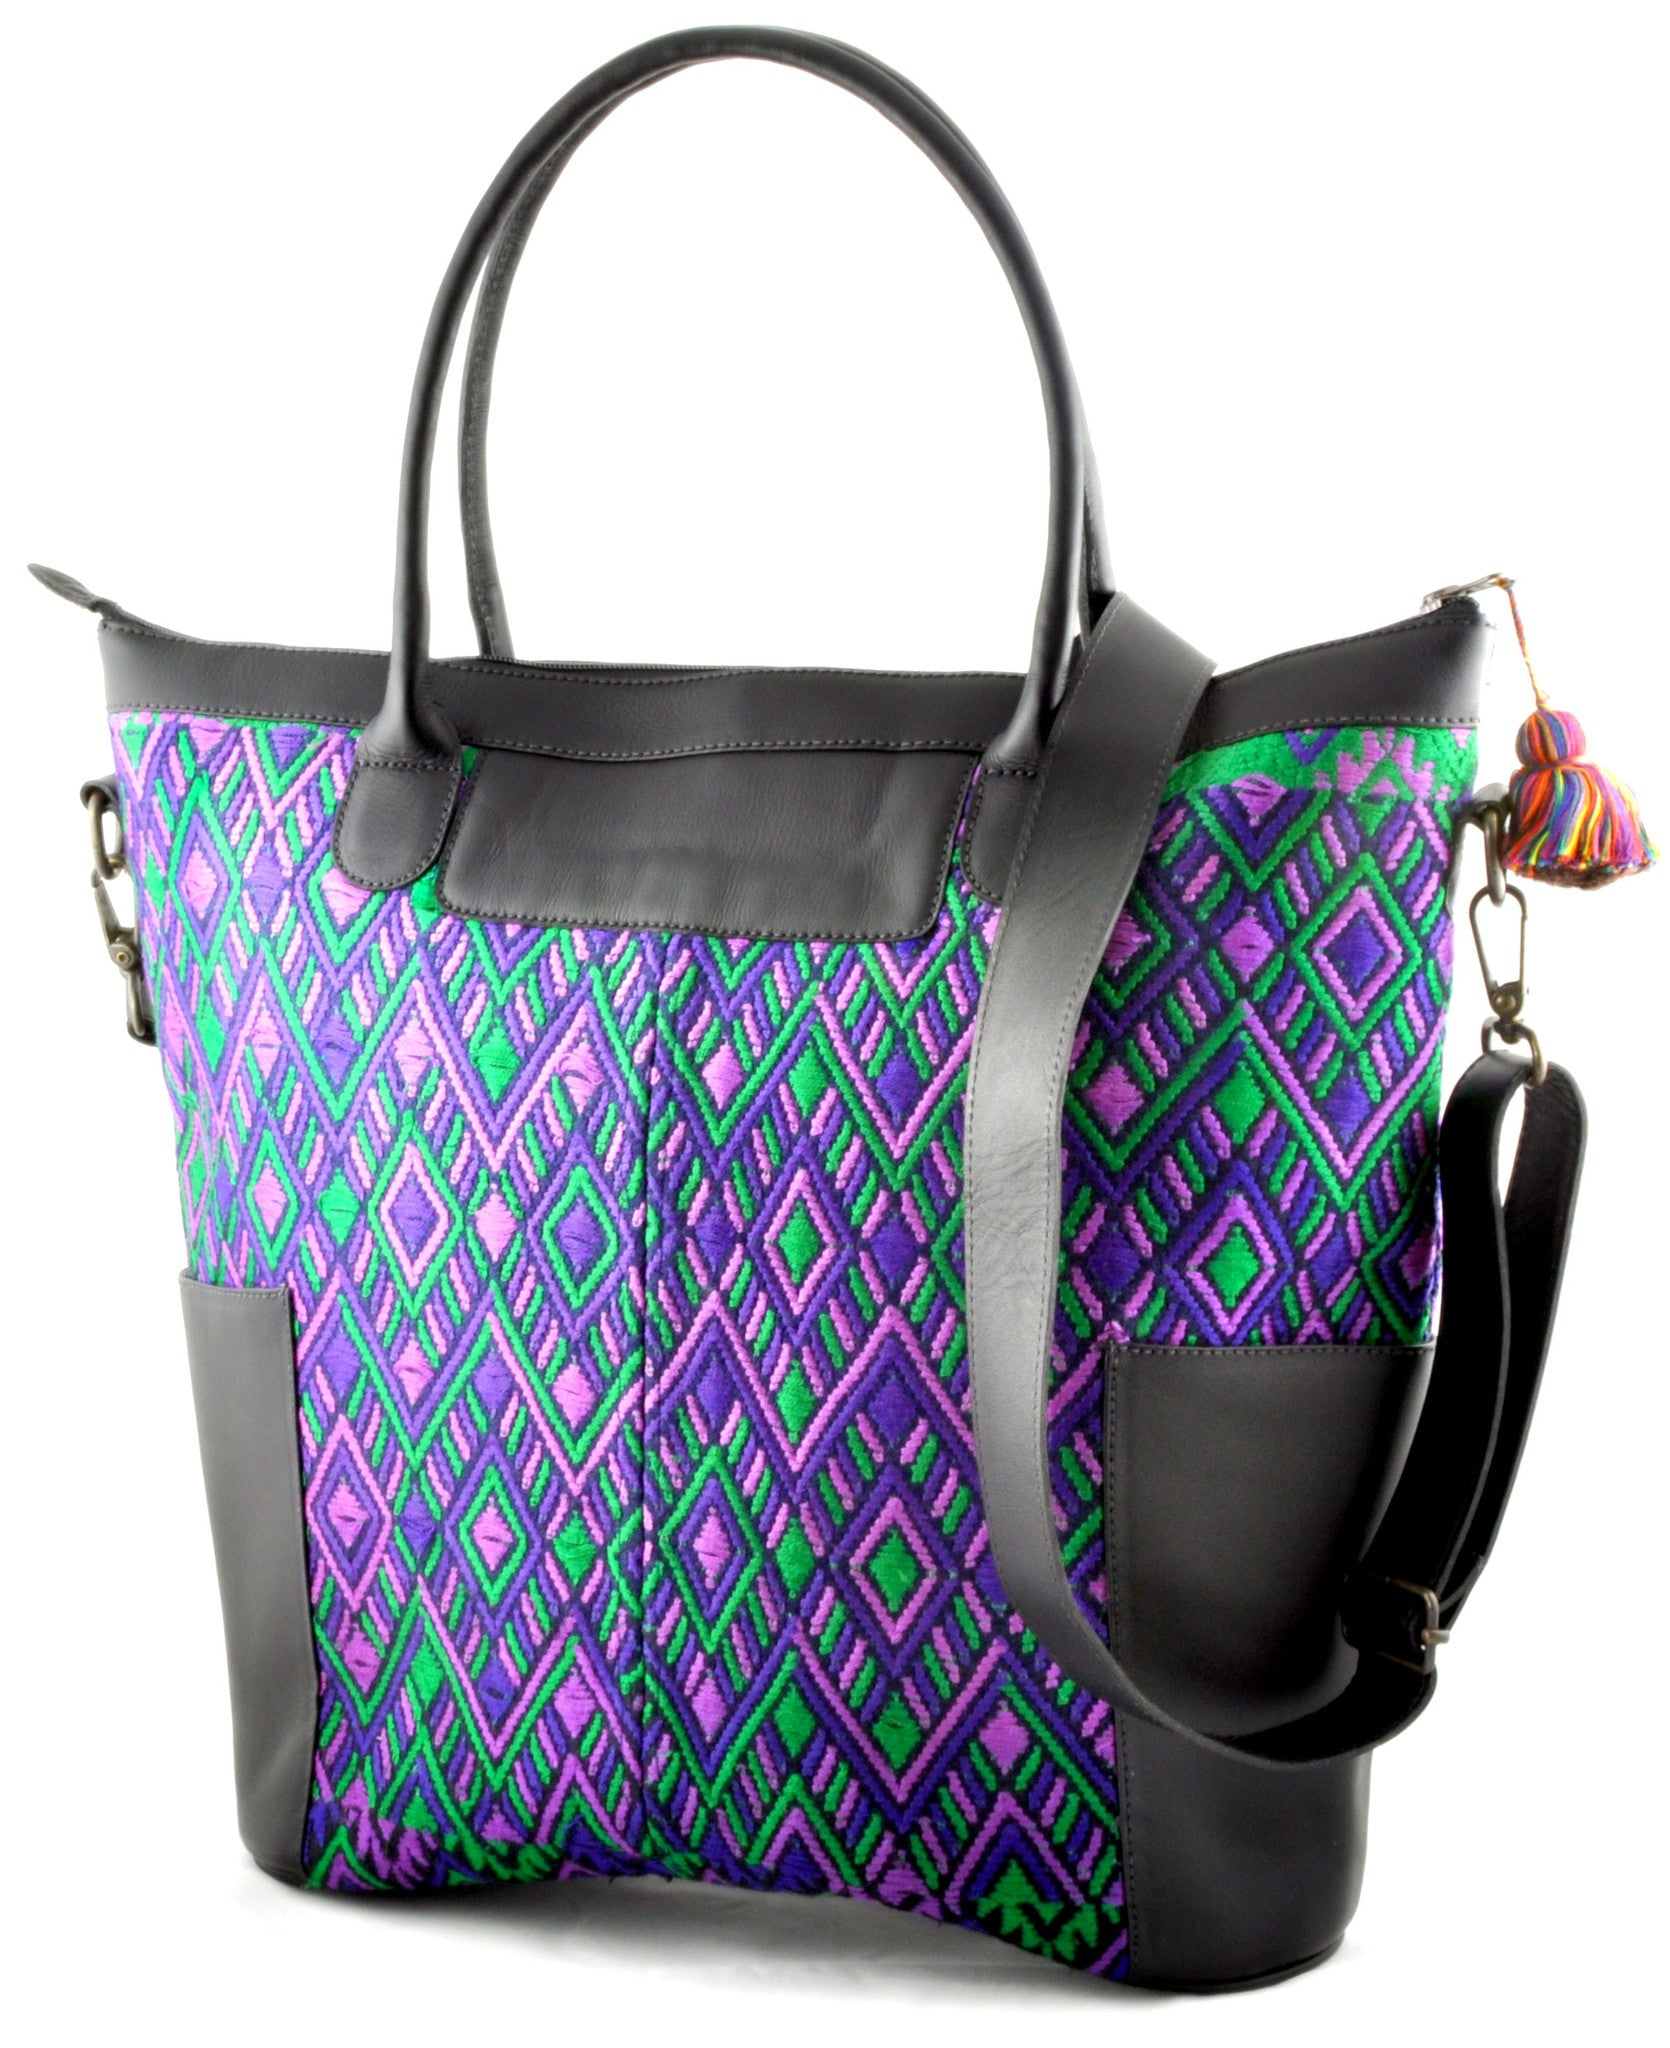 Huipil Weekender Tote - Purple Huipil with Black Leather